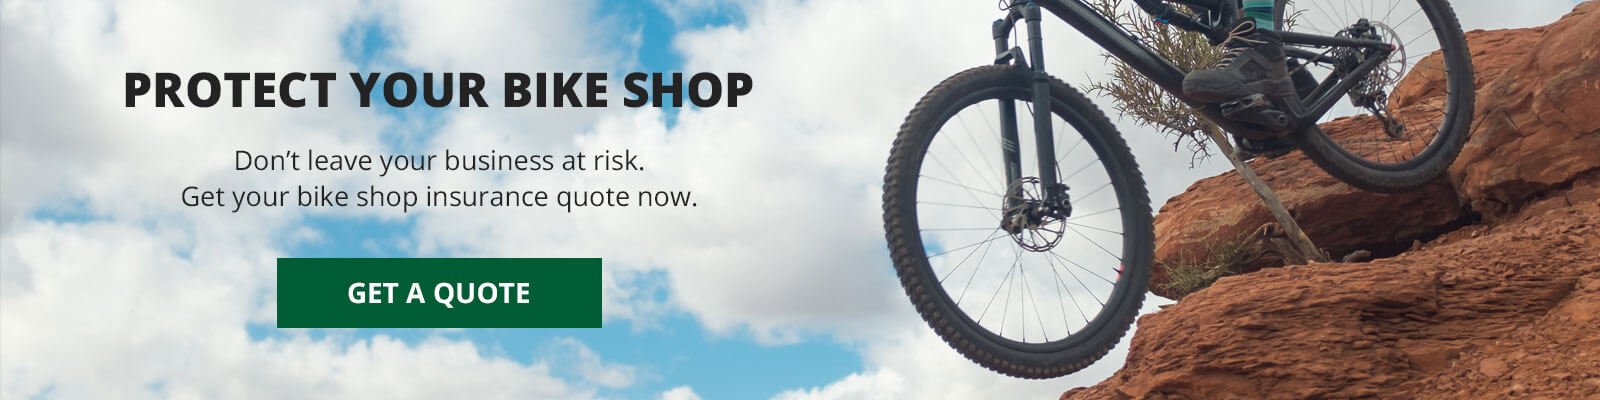 Bike Shop Insurance CTA